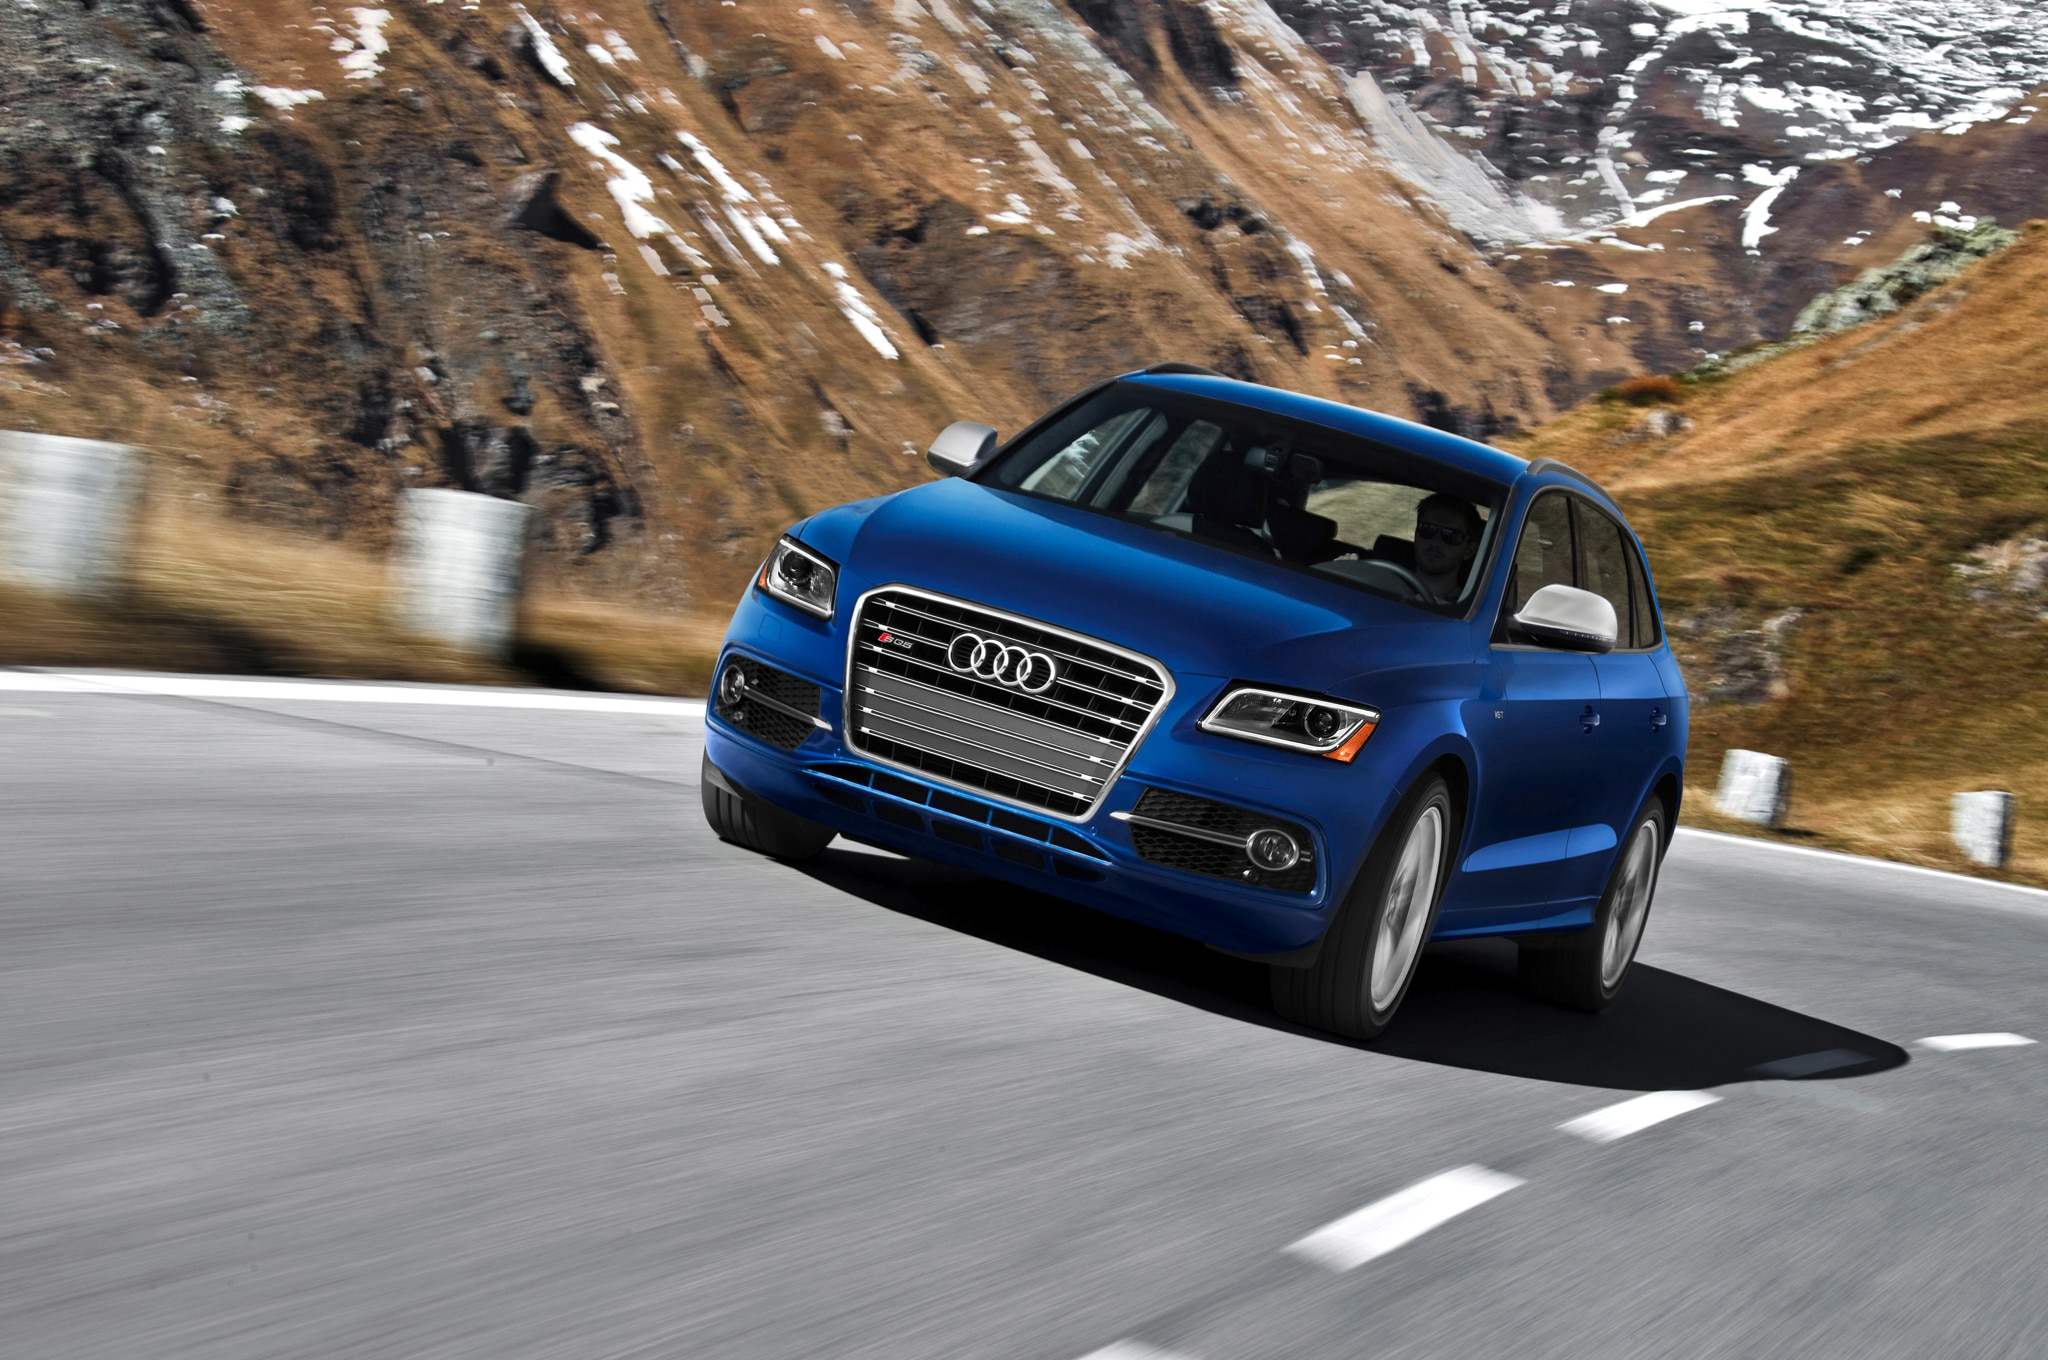 2014 Audi SQ5 Front End In Motion1